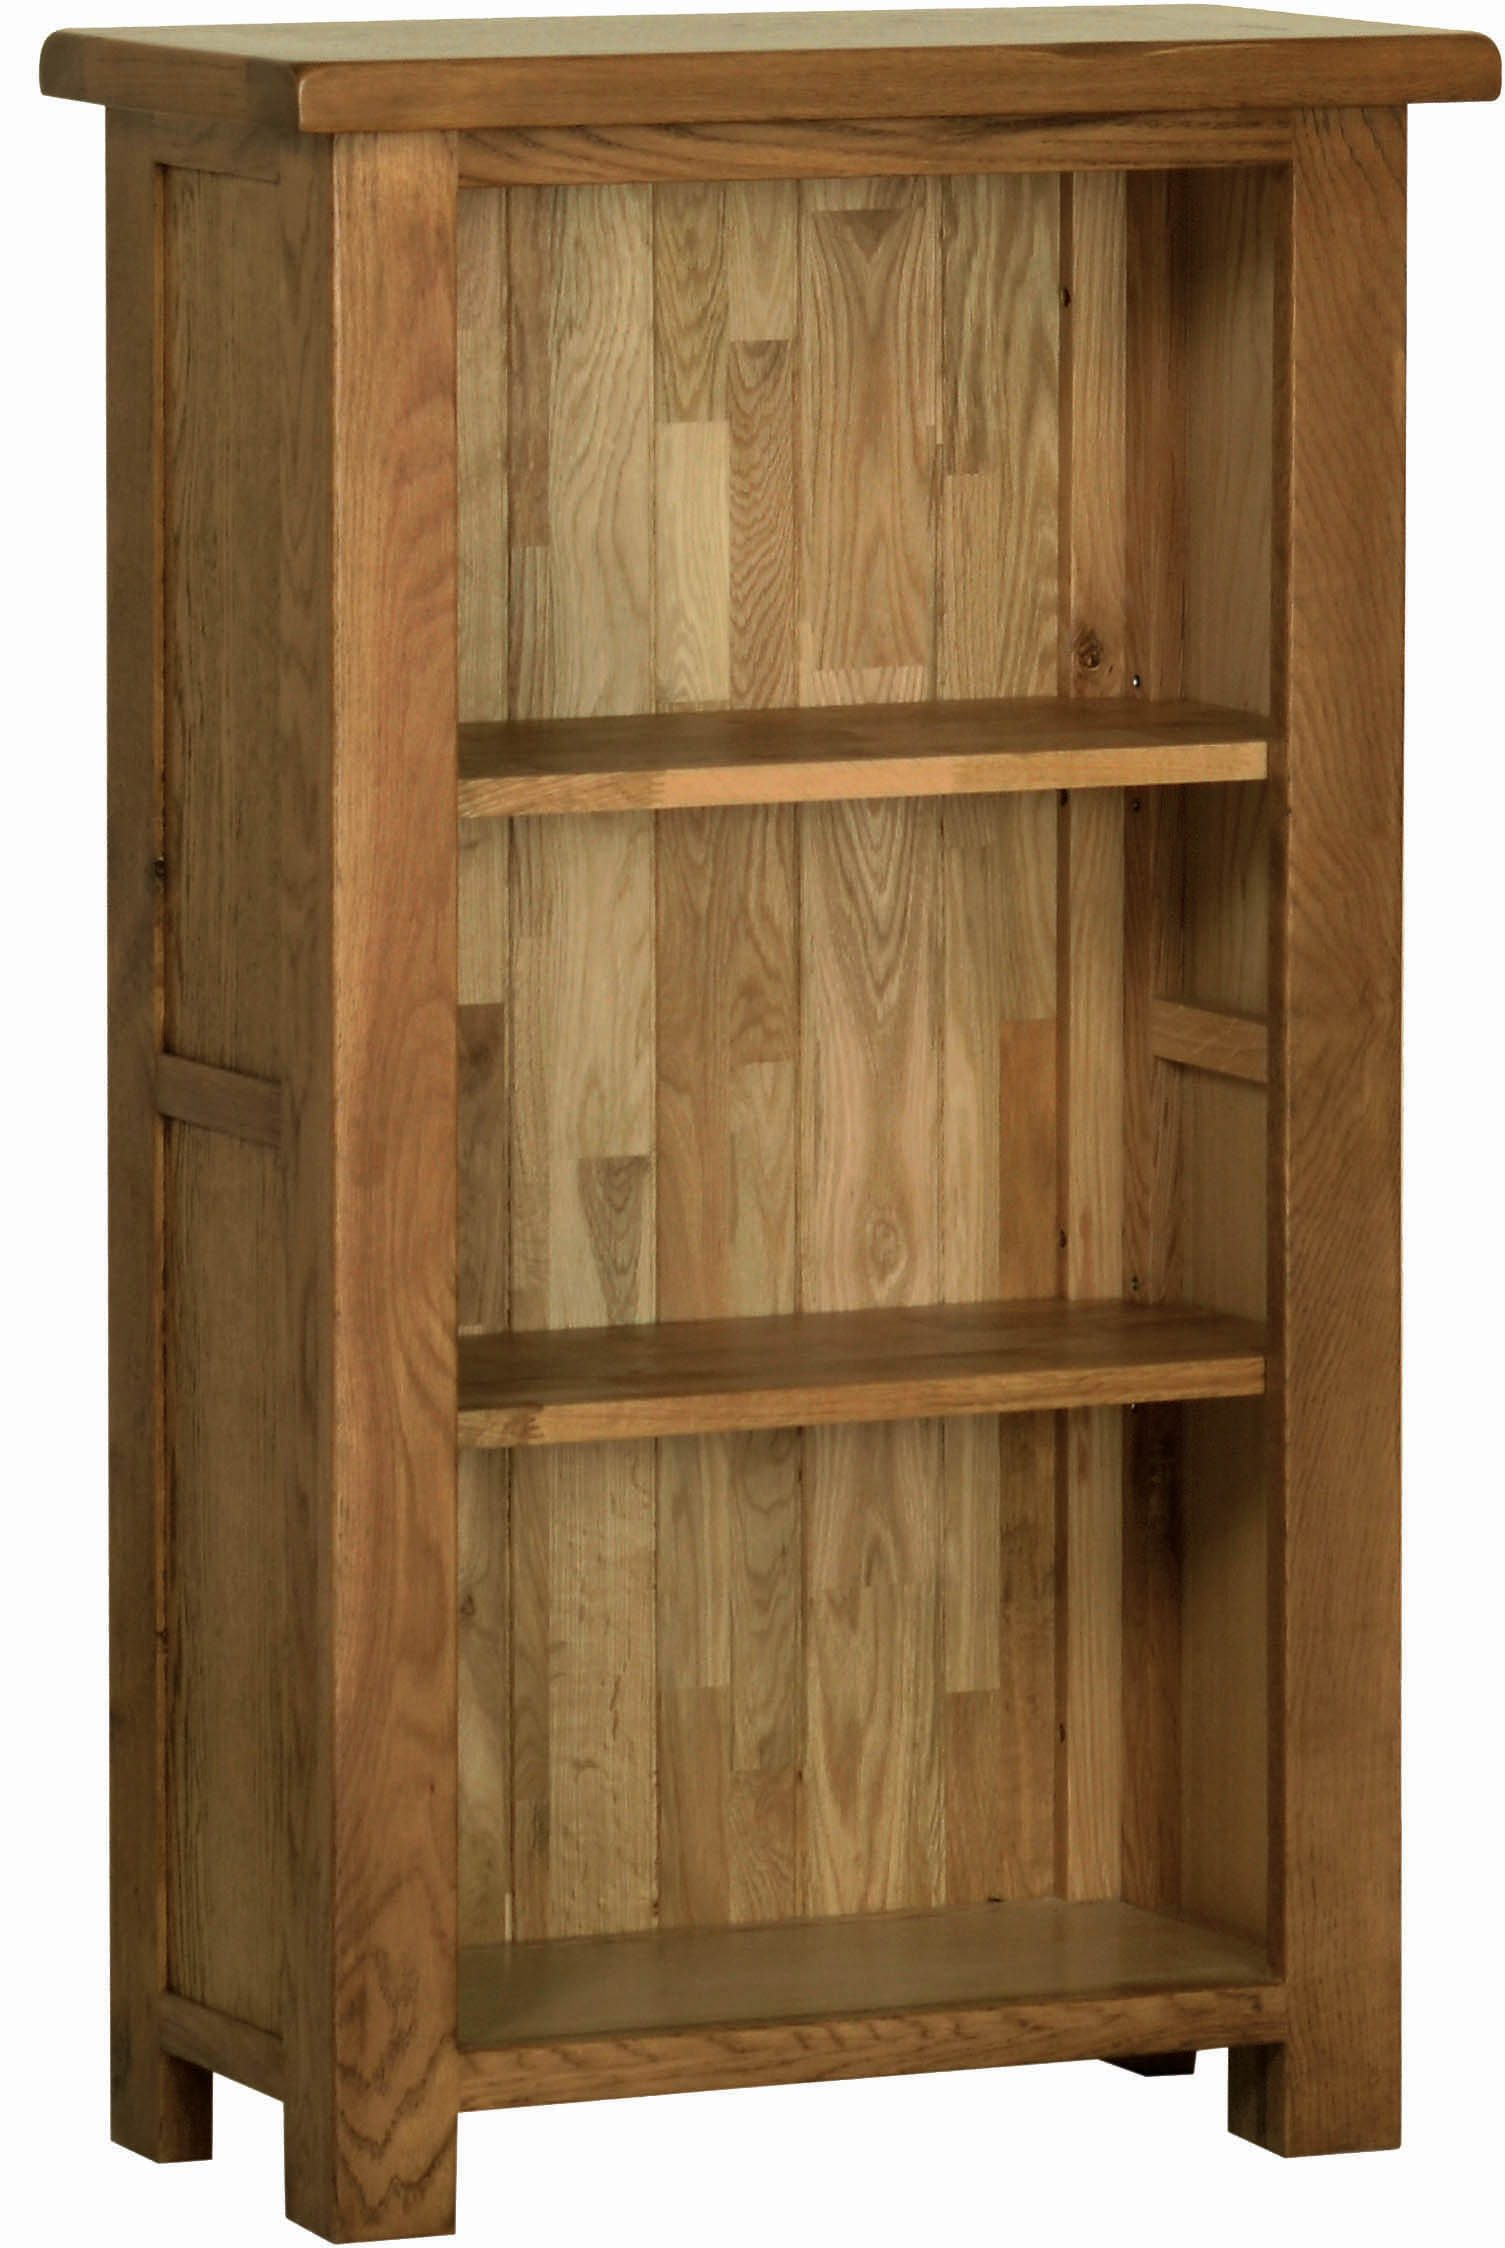 Sudbury Oak 3ft Bookcase. Rustic shaker style with rounded edges. 2 adjustable shelves. SRK15